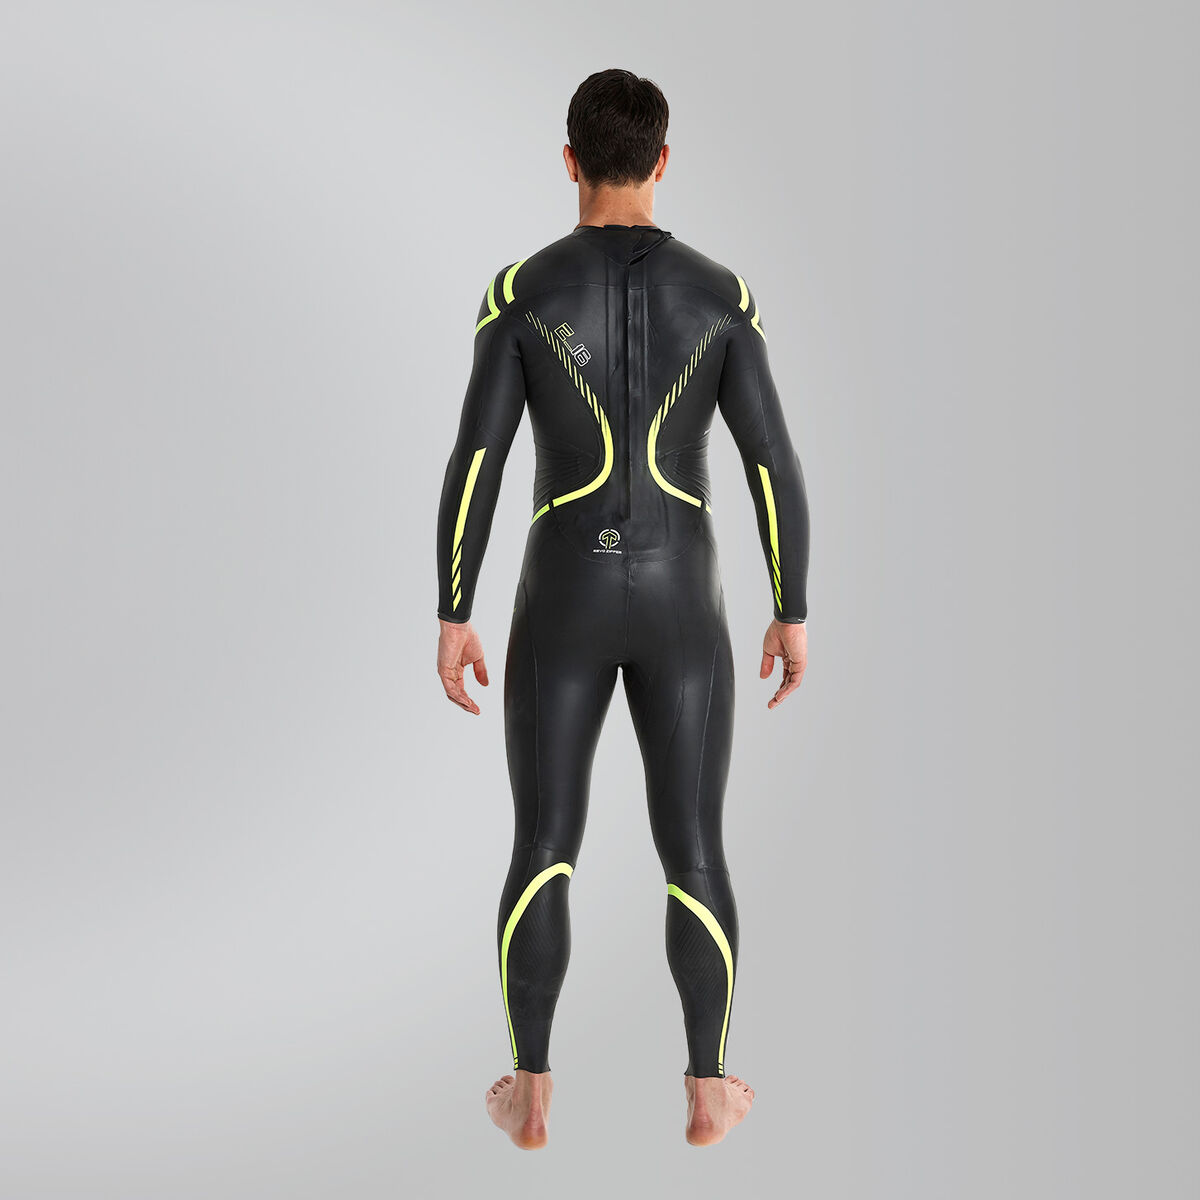 Triathlon Elite Fullsuit